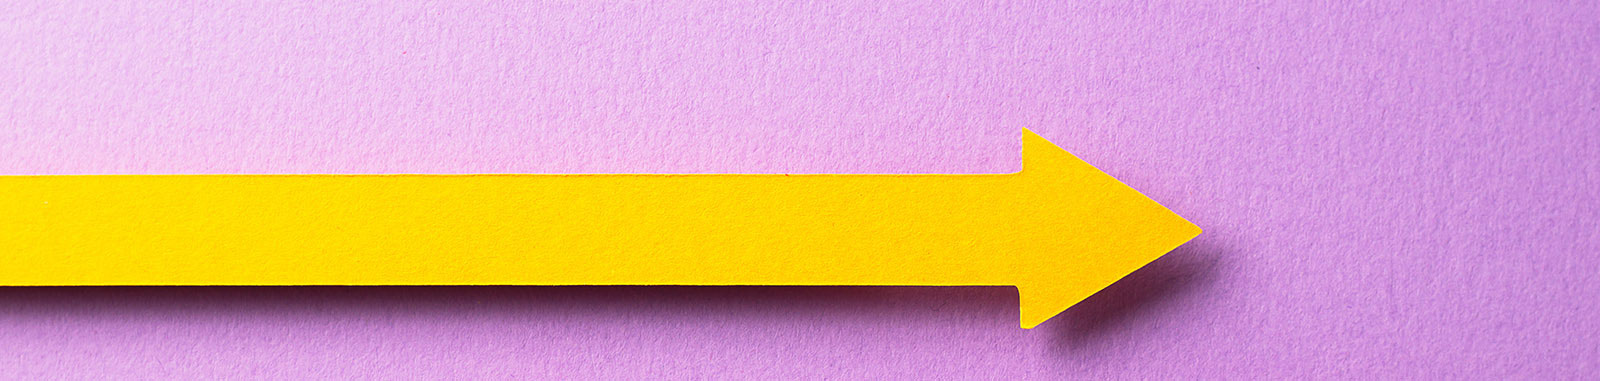 Yellow arrow on a purple background